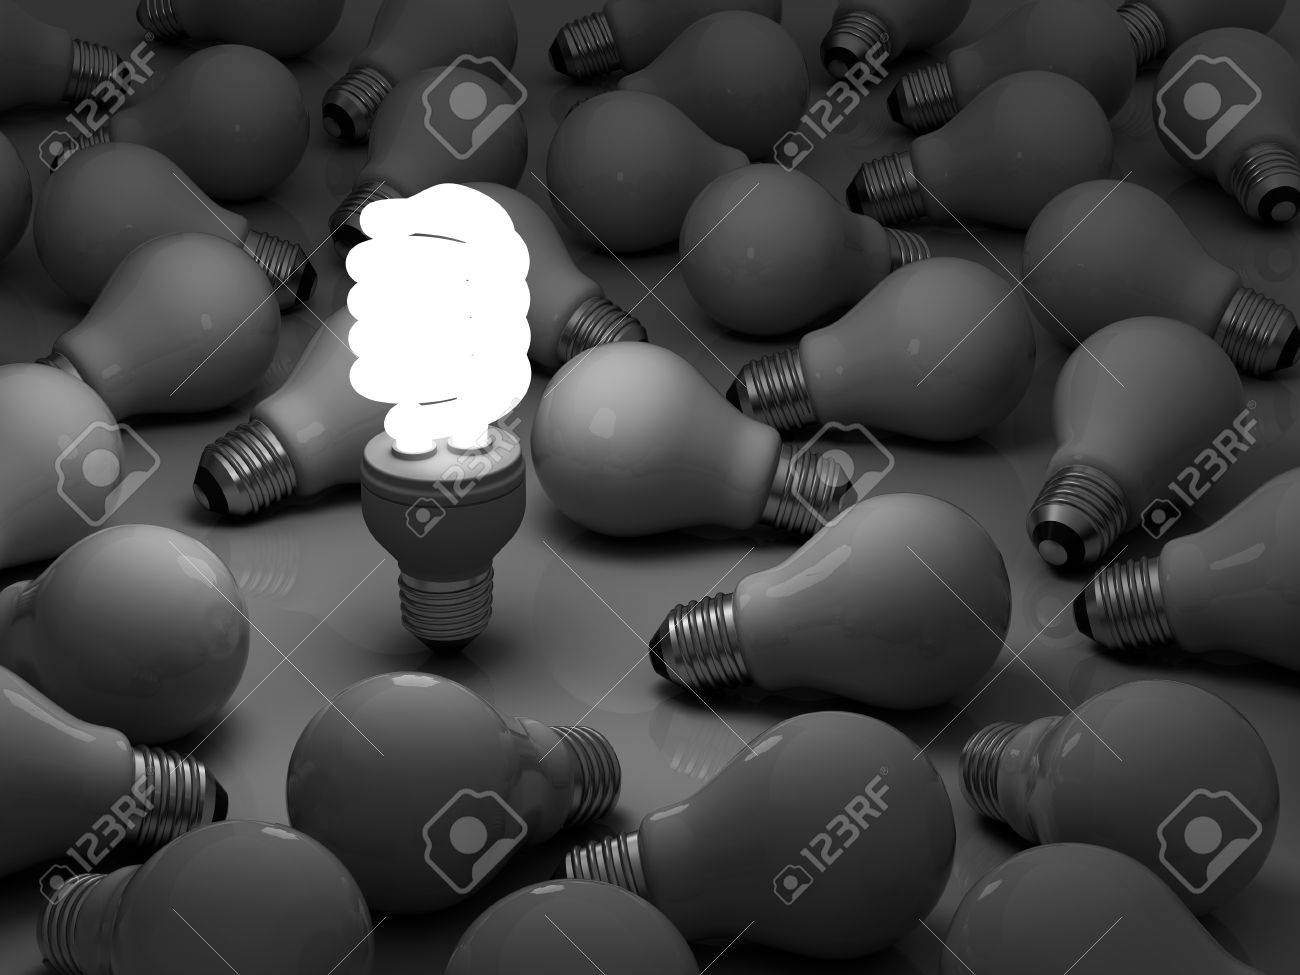 It s time for energy saving light bulb, one glowing compact fluorescent light bulb standing out from the unlit incandescent bulbs Stock Photo - 14821614